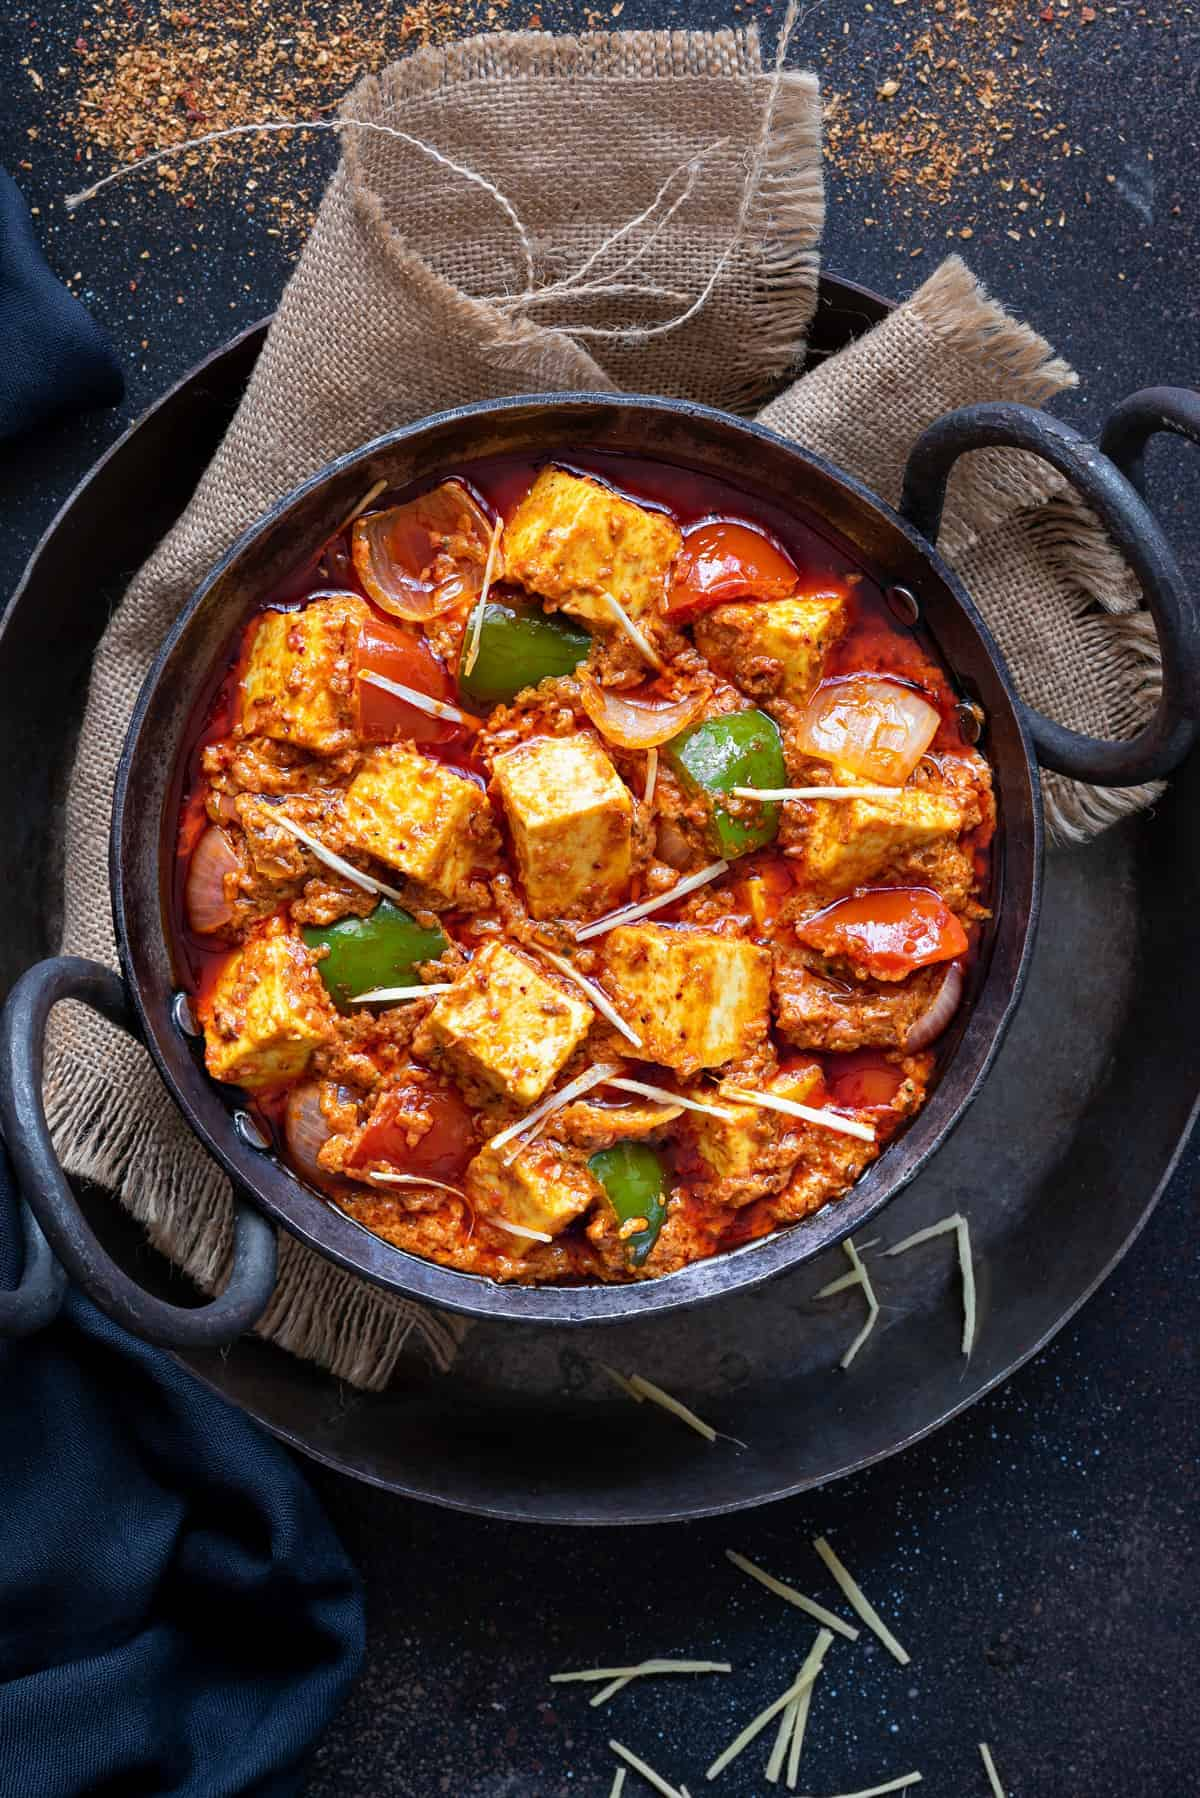 KADHAI PANEER THE GREAT